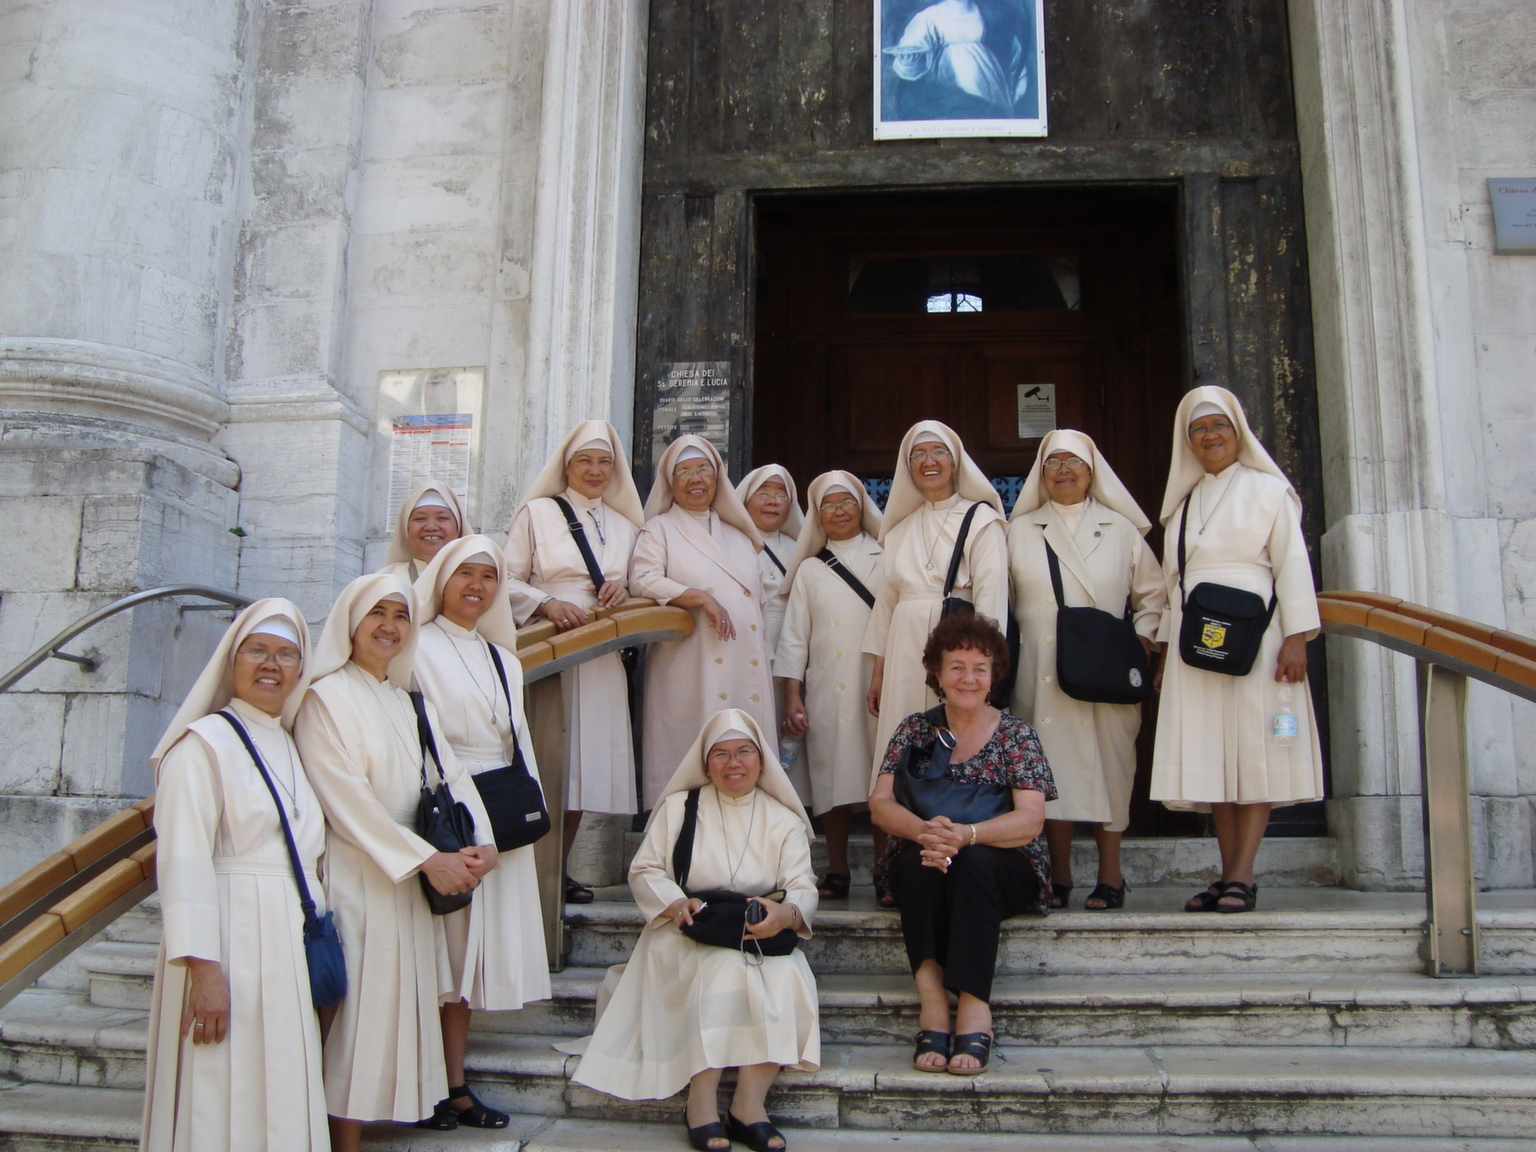 Swollen ankles and a flock of nuns, Venice 2011